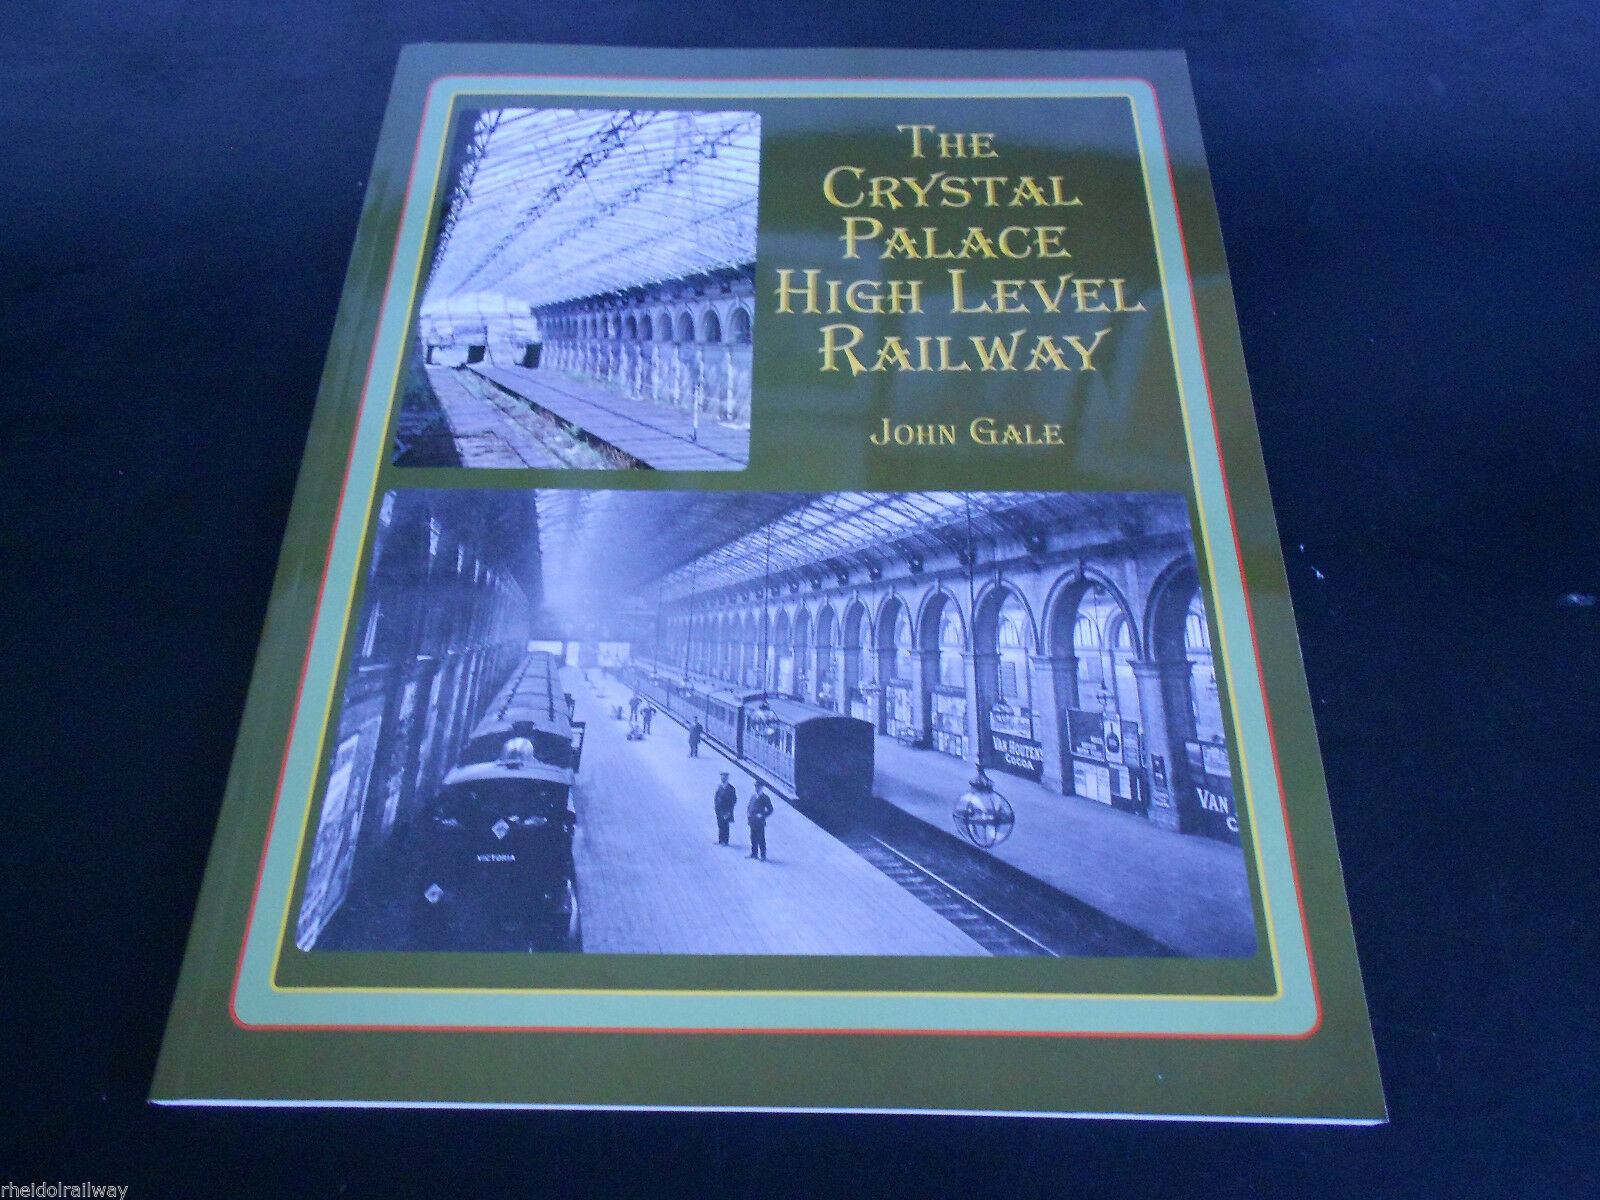 The Crystal Palace High Level Railway by John Gale (Paperback, 2011)